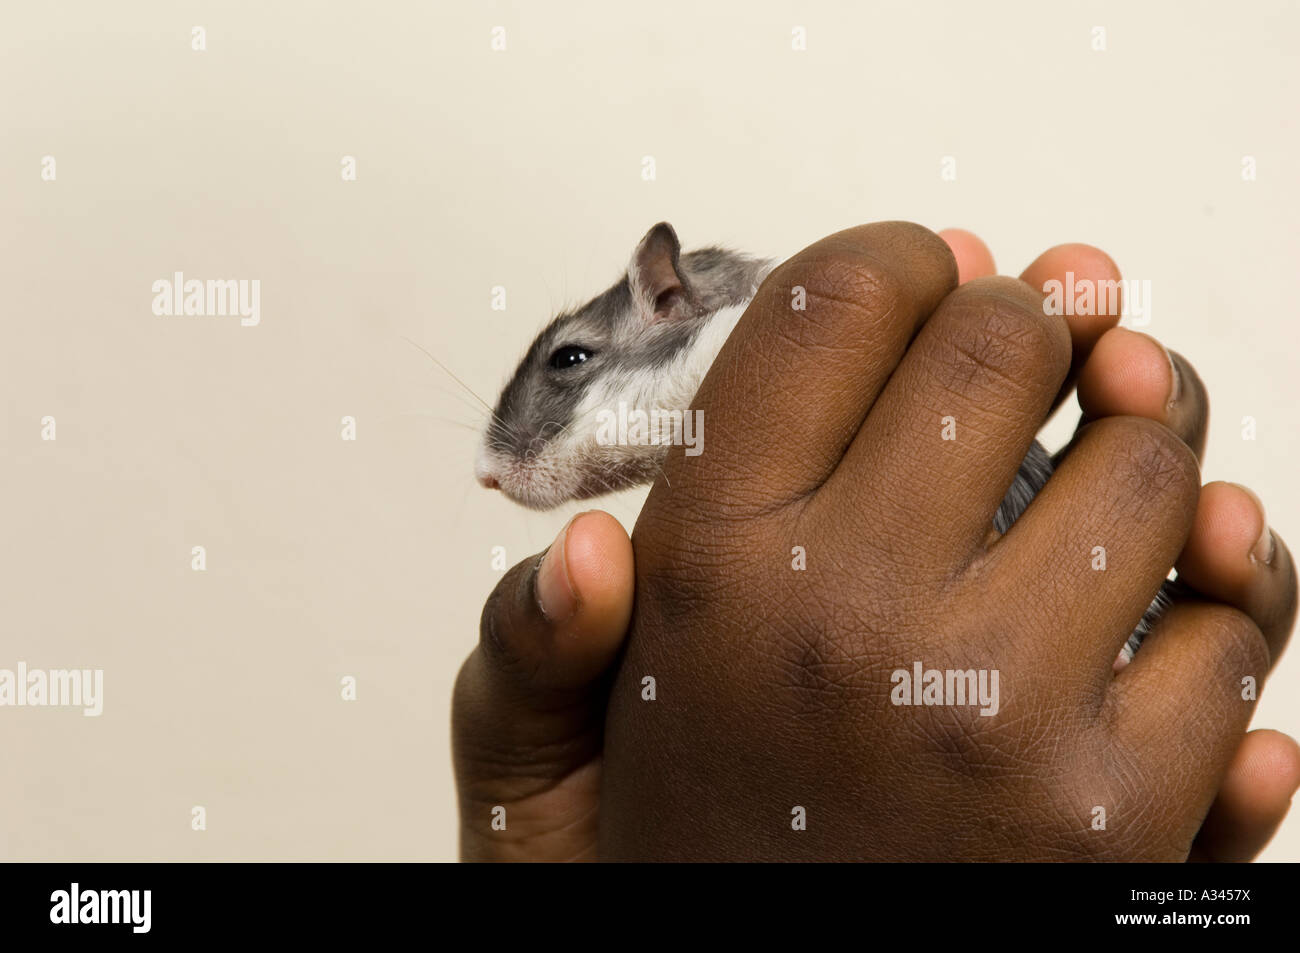 Gerbil in a young boy's hands - Stock Image